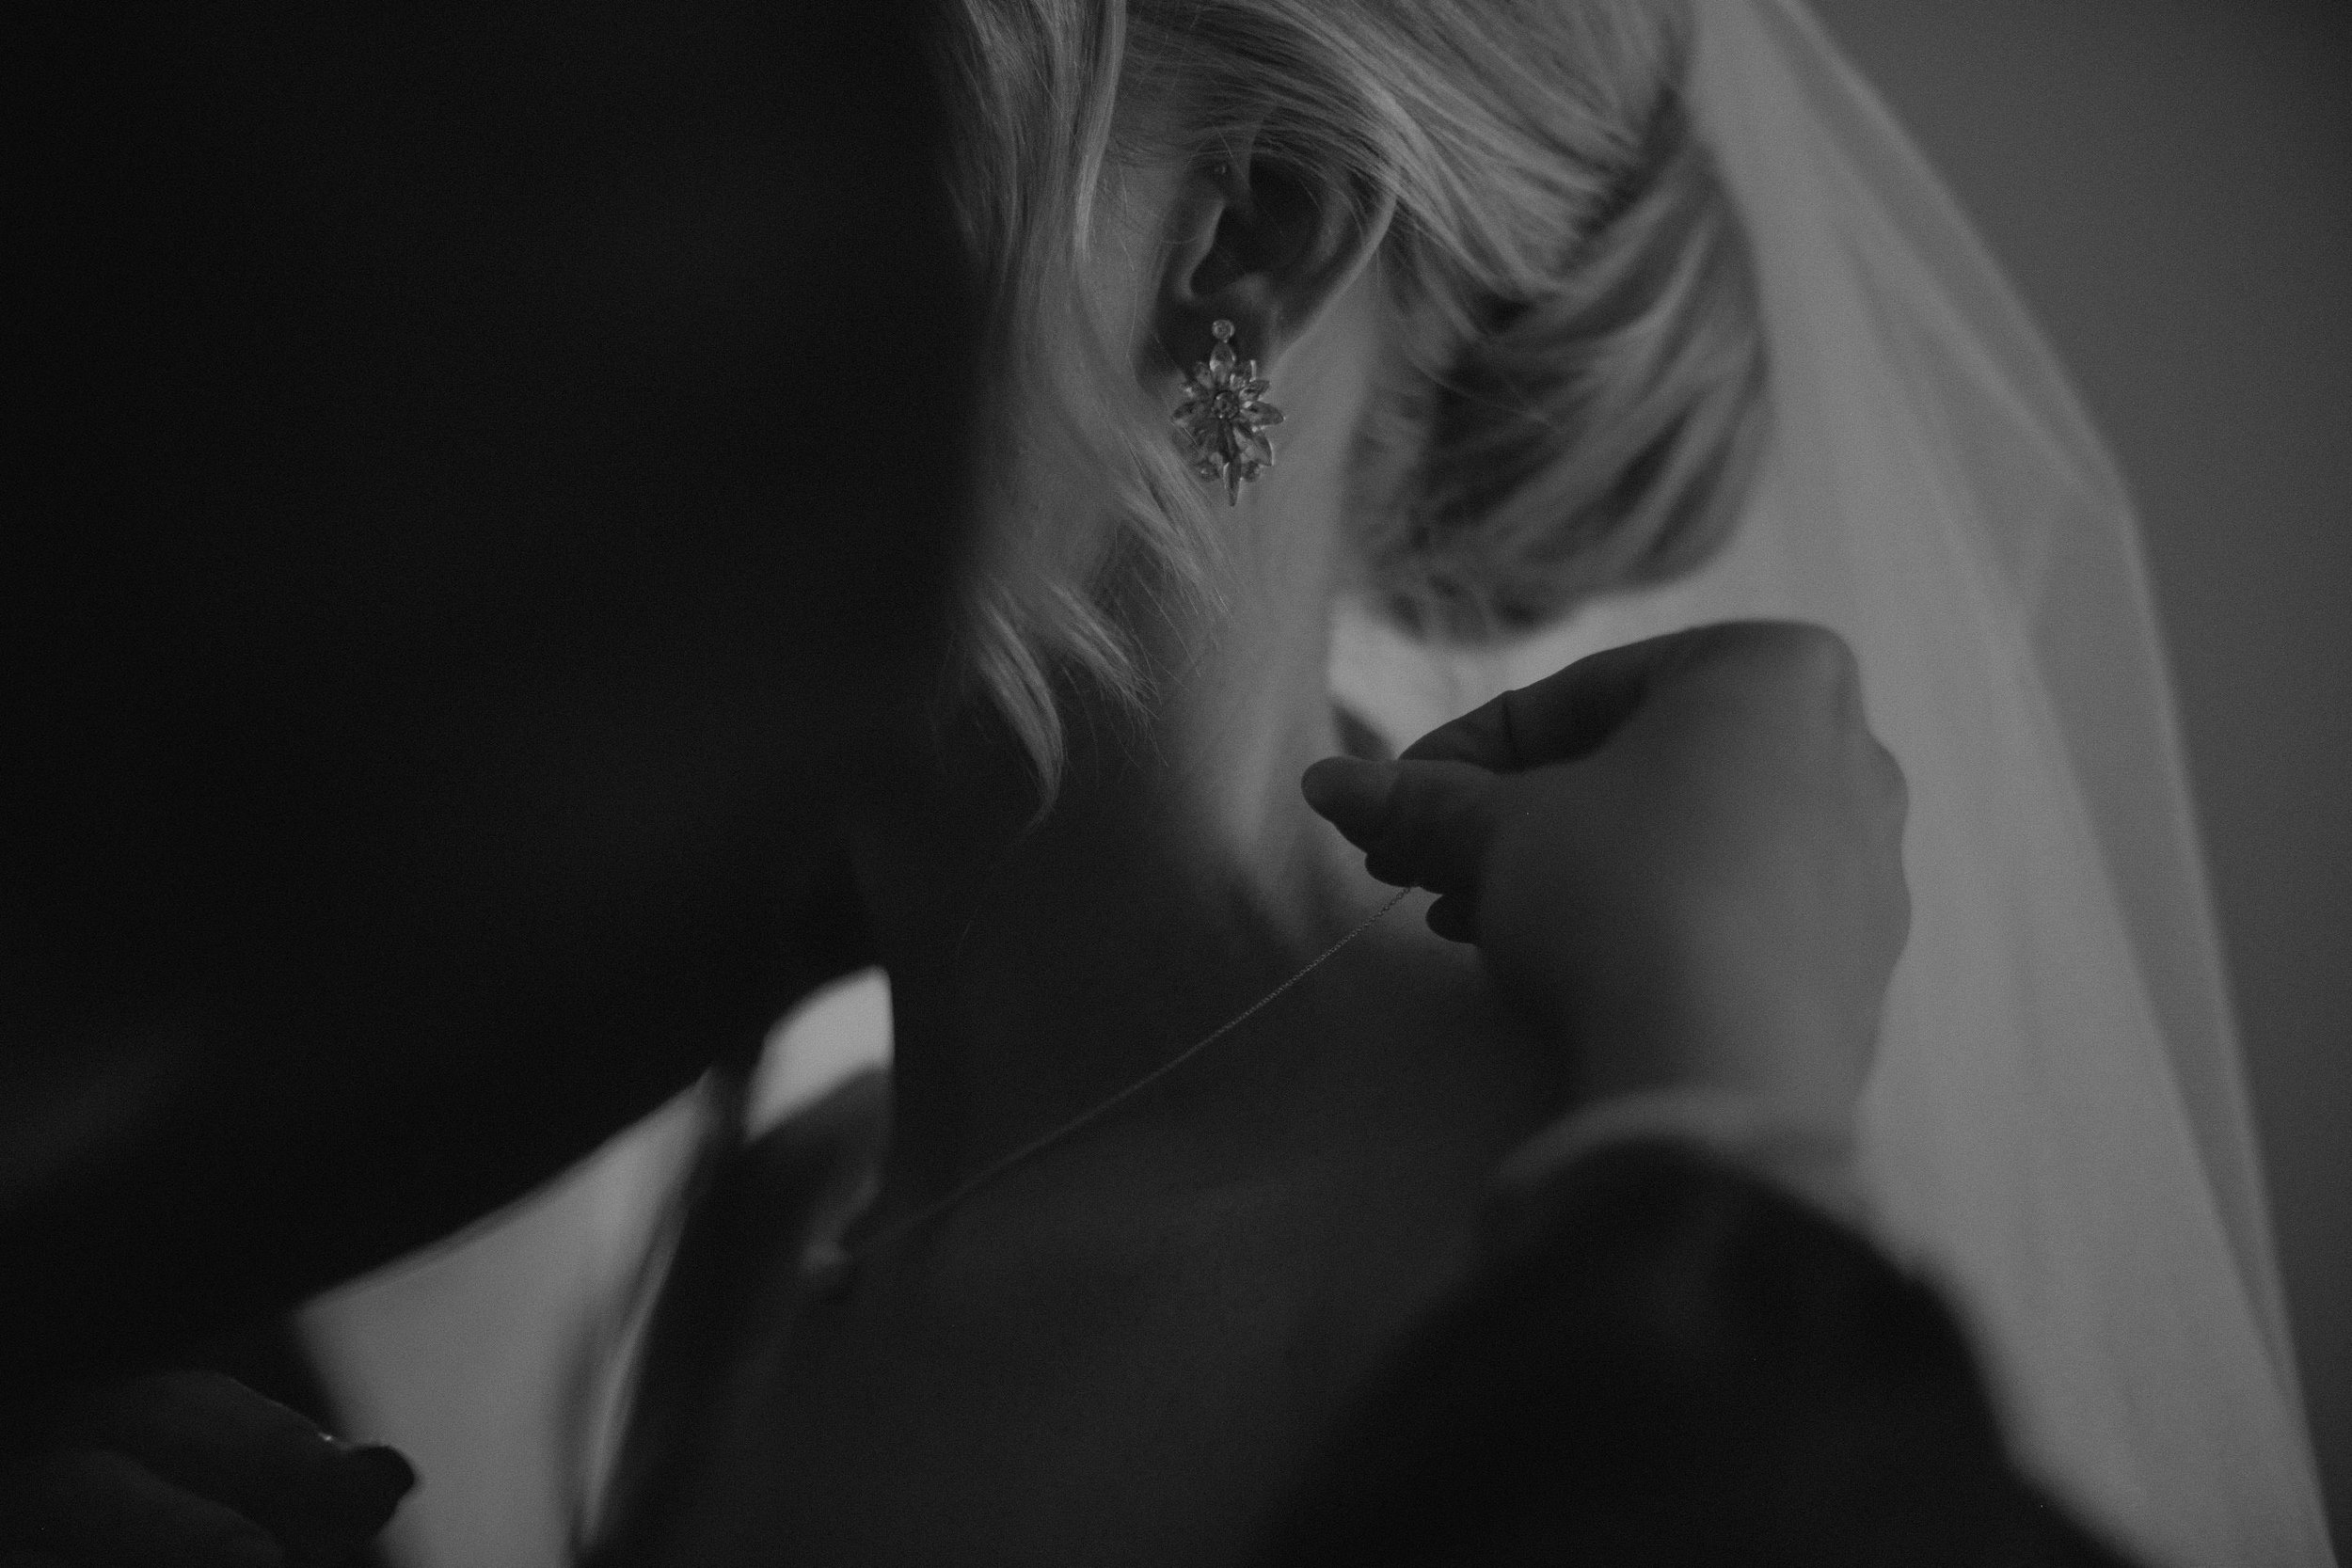 A bride putting on her necklace, a gift from her groom